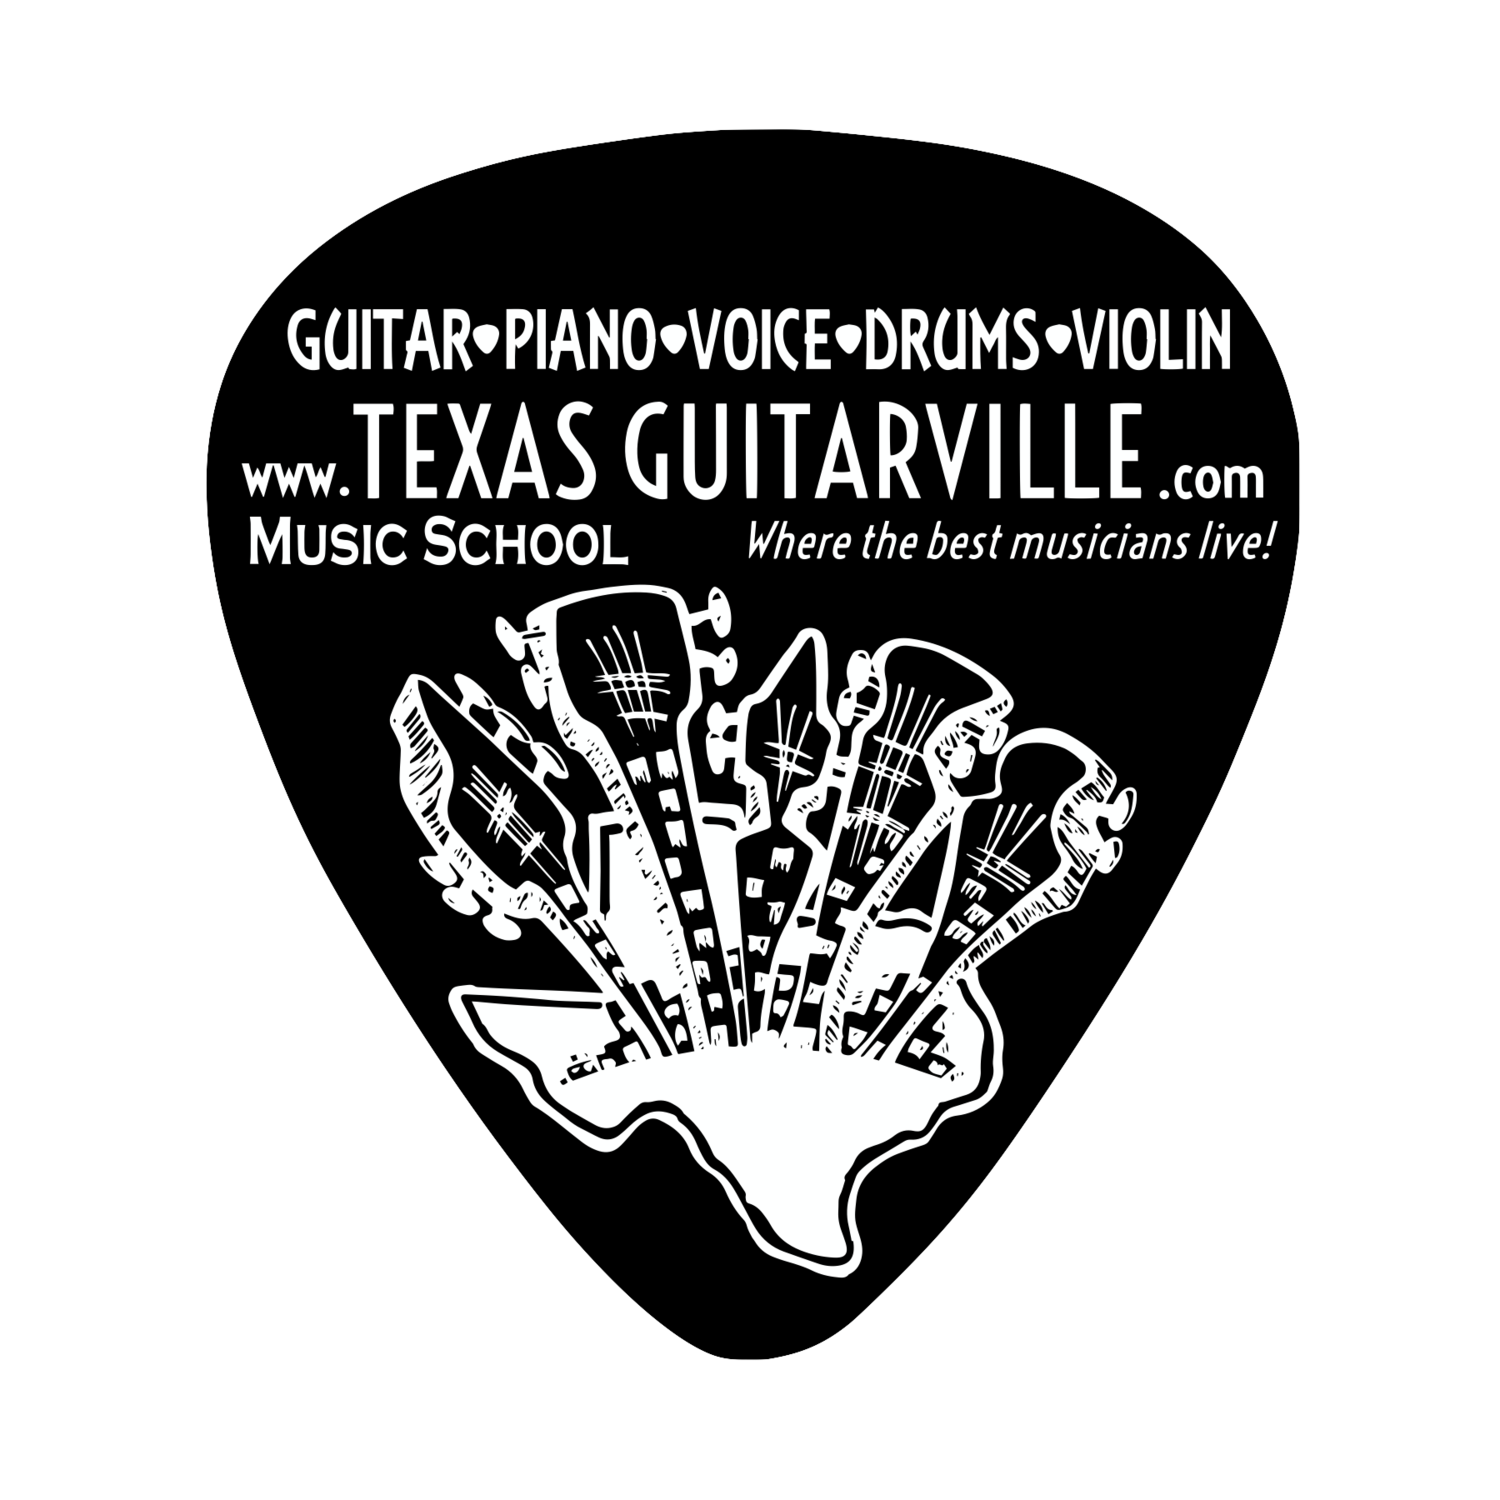 TEXAS GUITARVILLE Music Schools in Keller|Grapevine|Trophy Club|Guitar Lessons|Piano Lessons